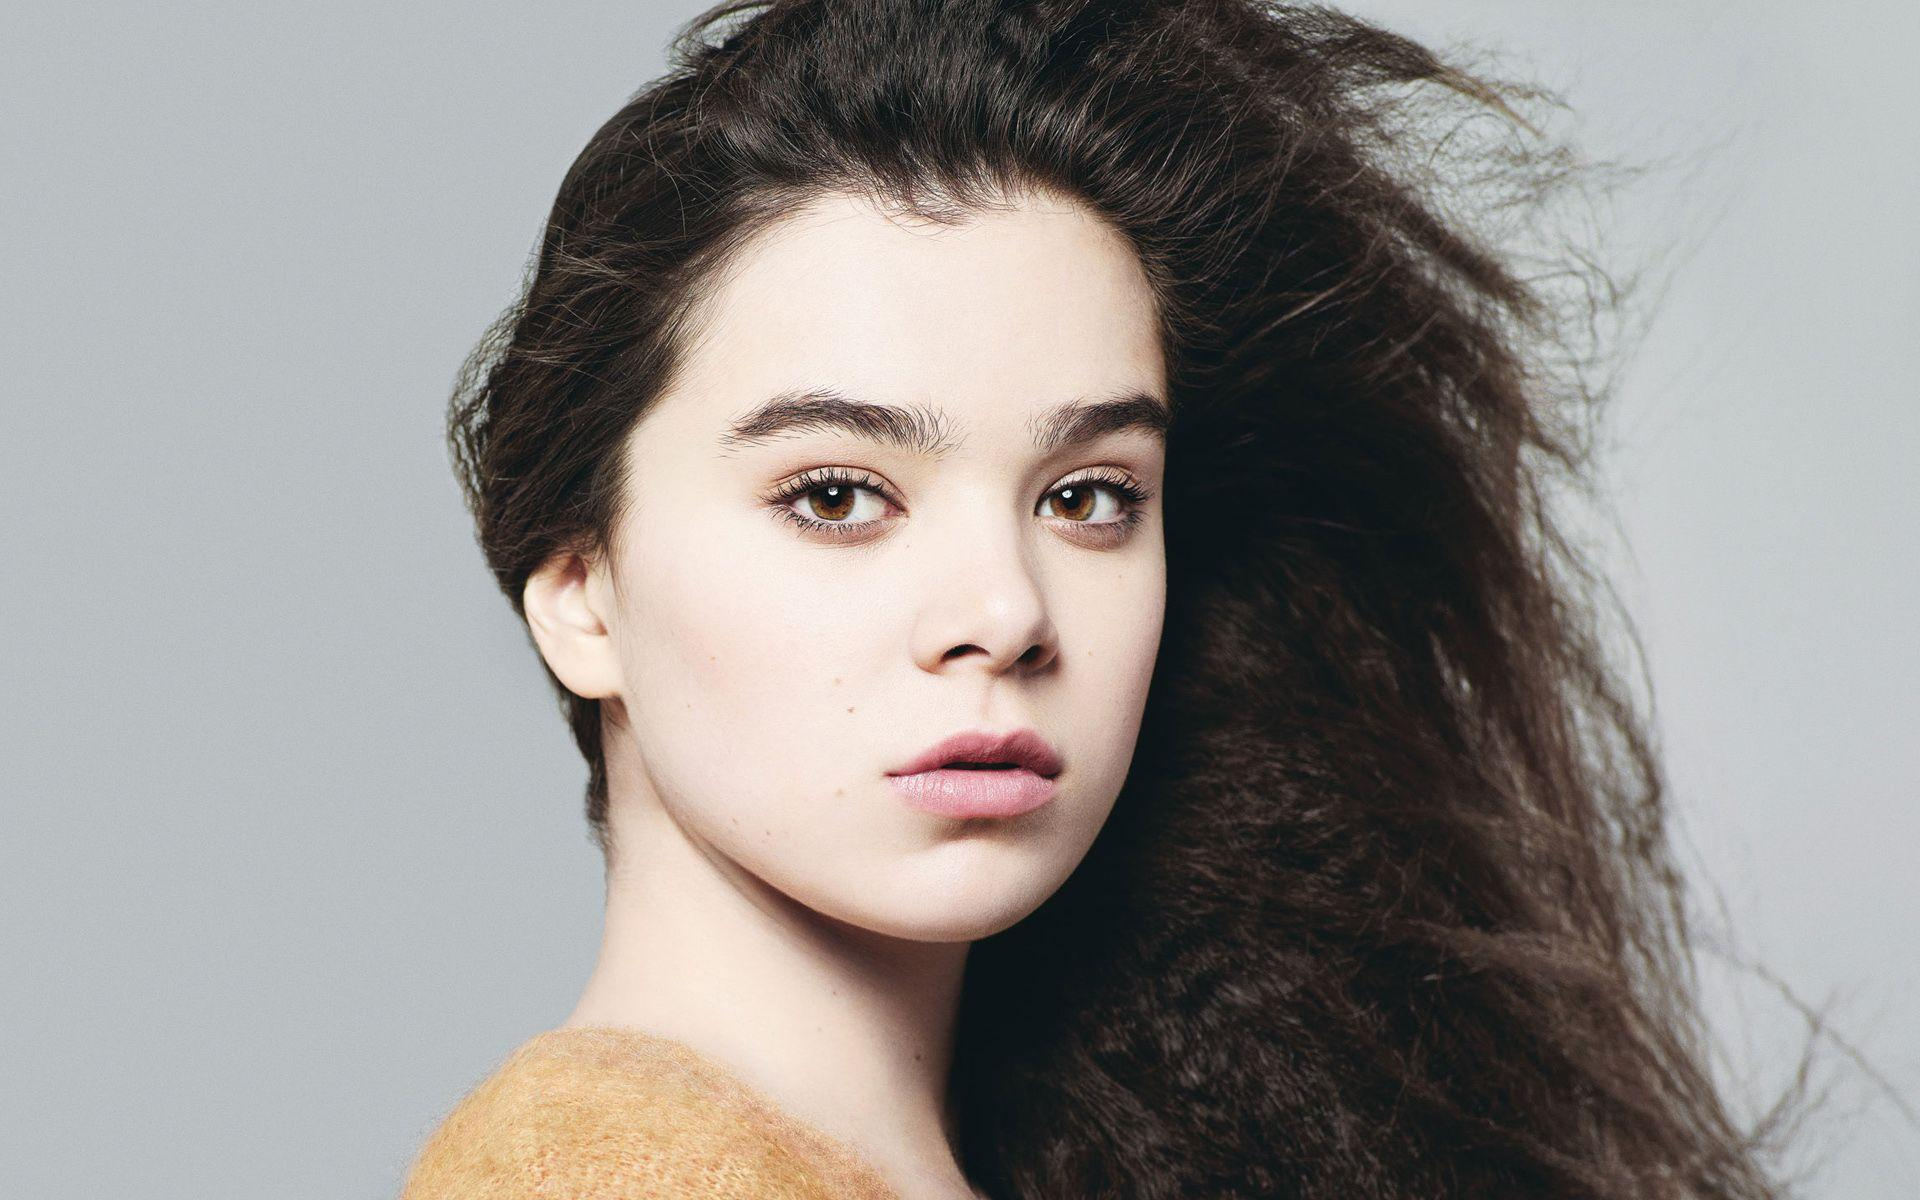 Actress Hailee Steinfeld Wallpapers | HD Wallpapers